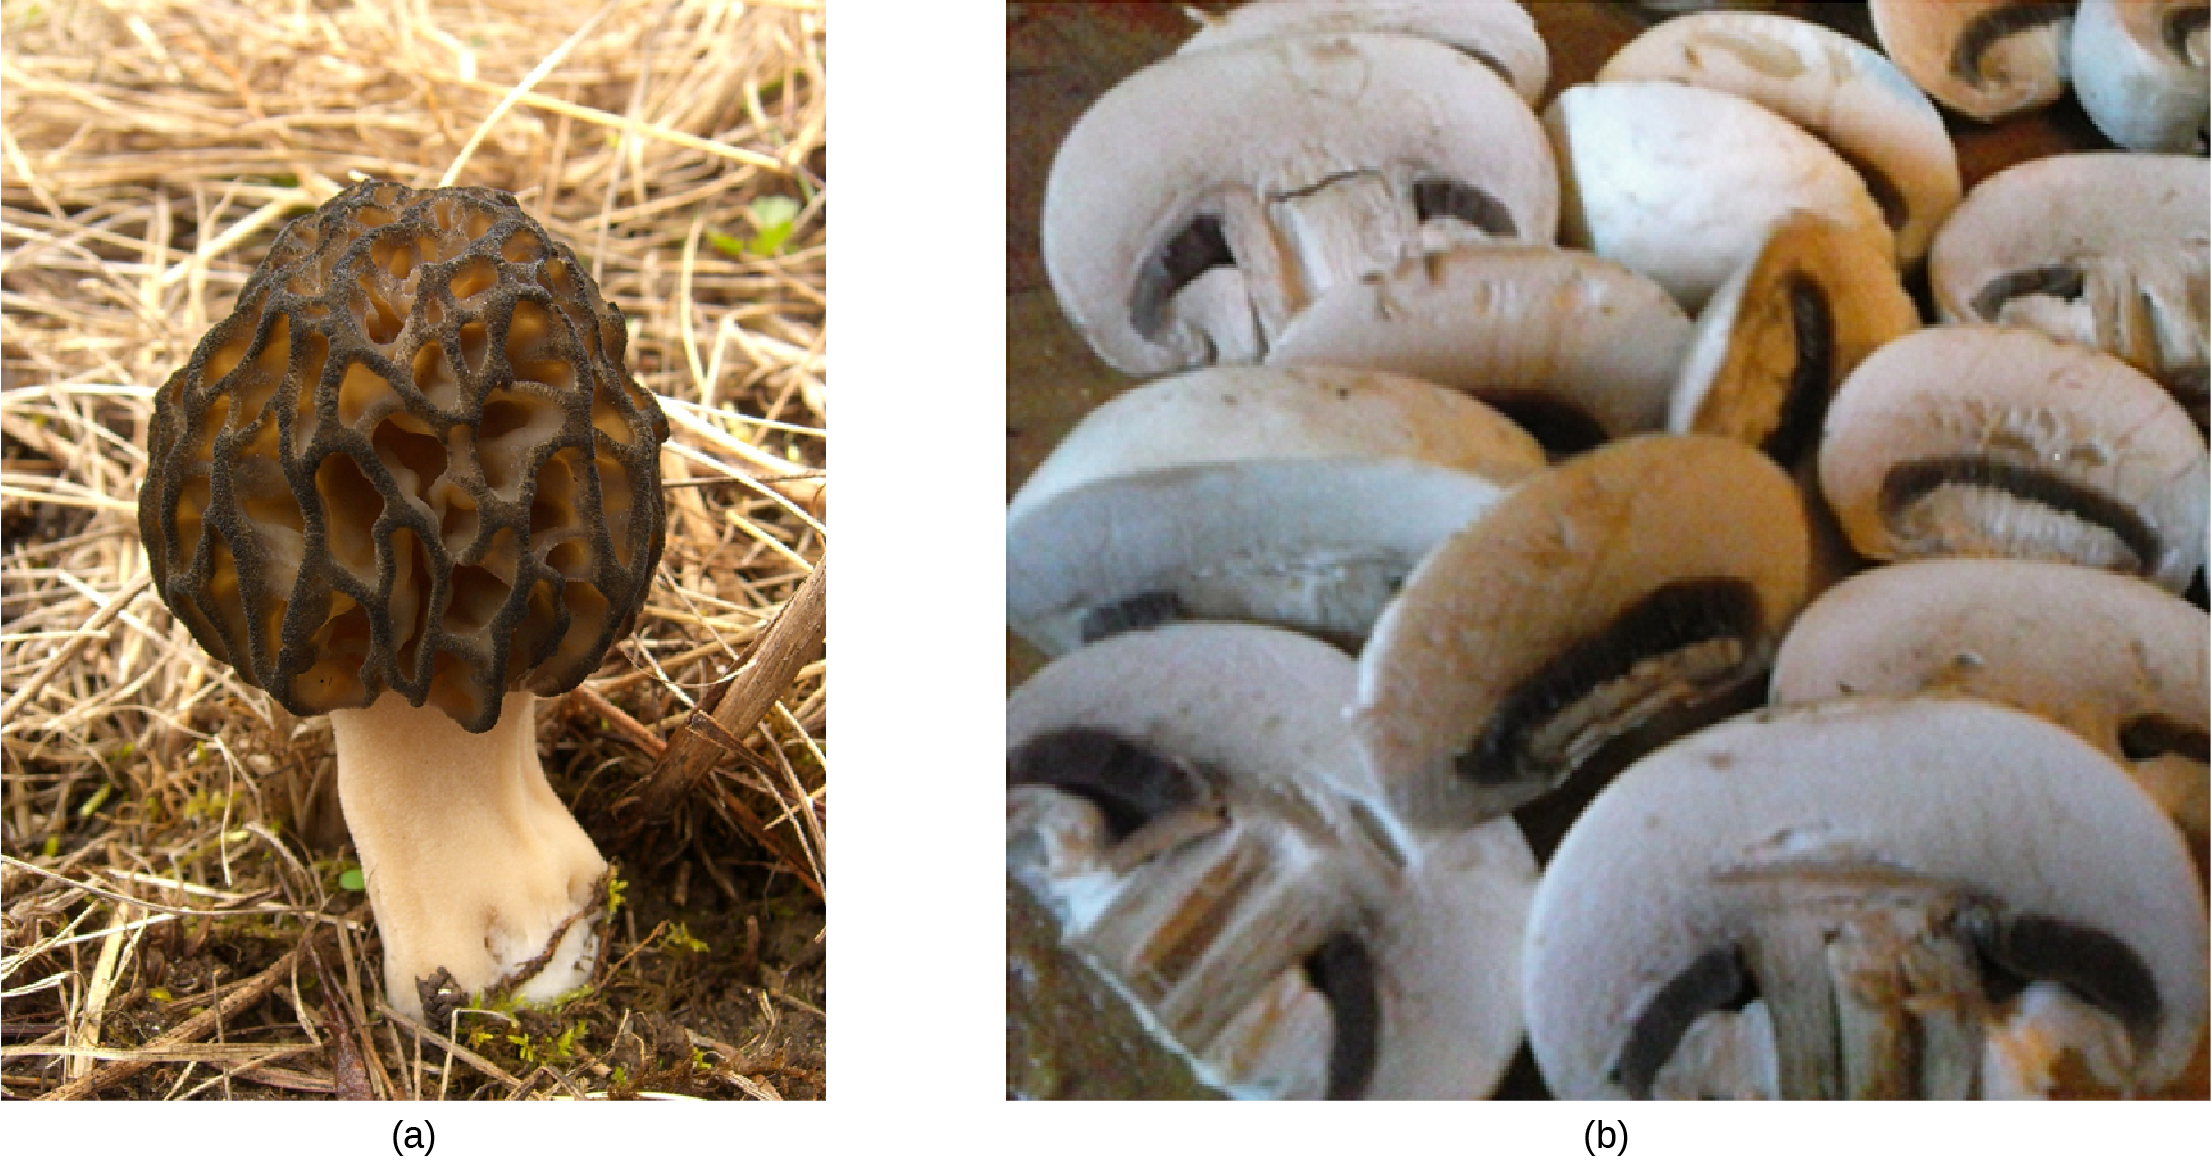 Part a Photo shows a mushroom with a convoluted black cap. Part b shows a pile of sliced mushrooms similar to ones people would see in a food store.